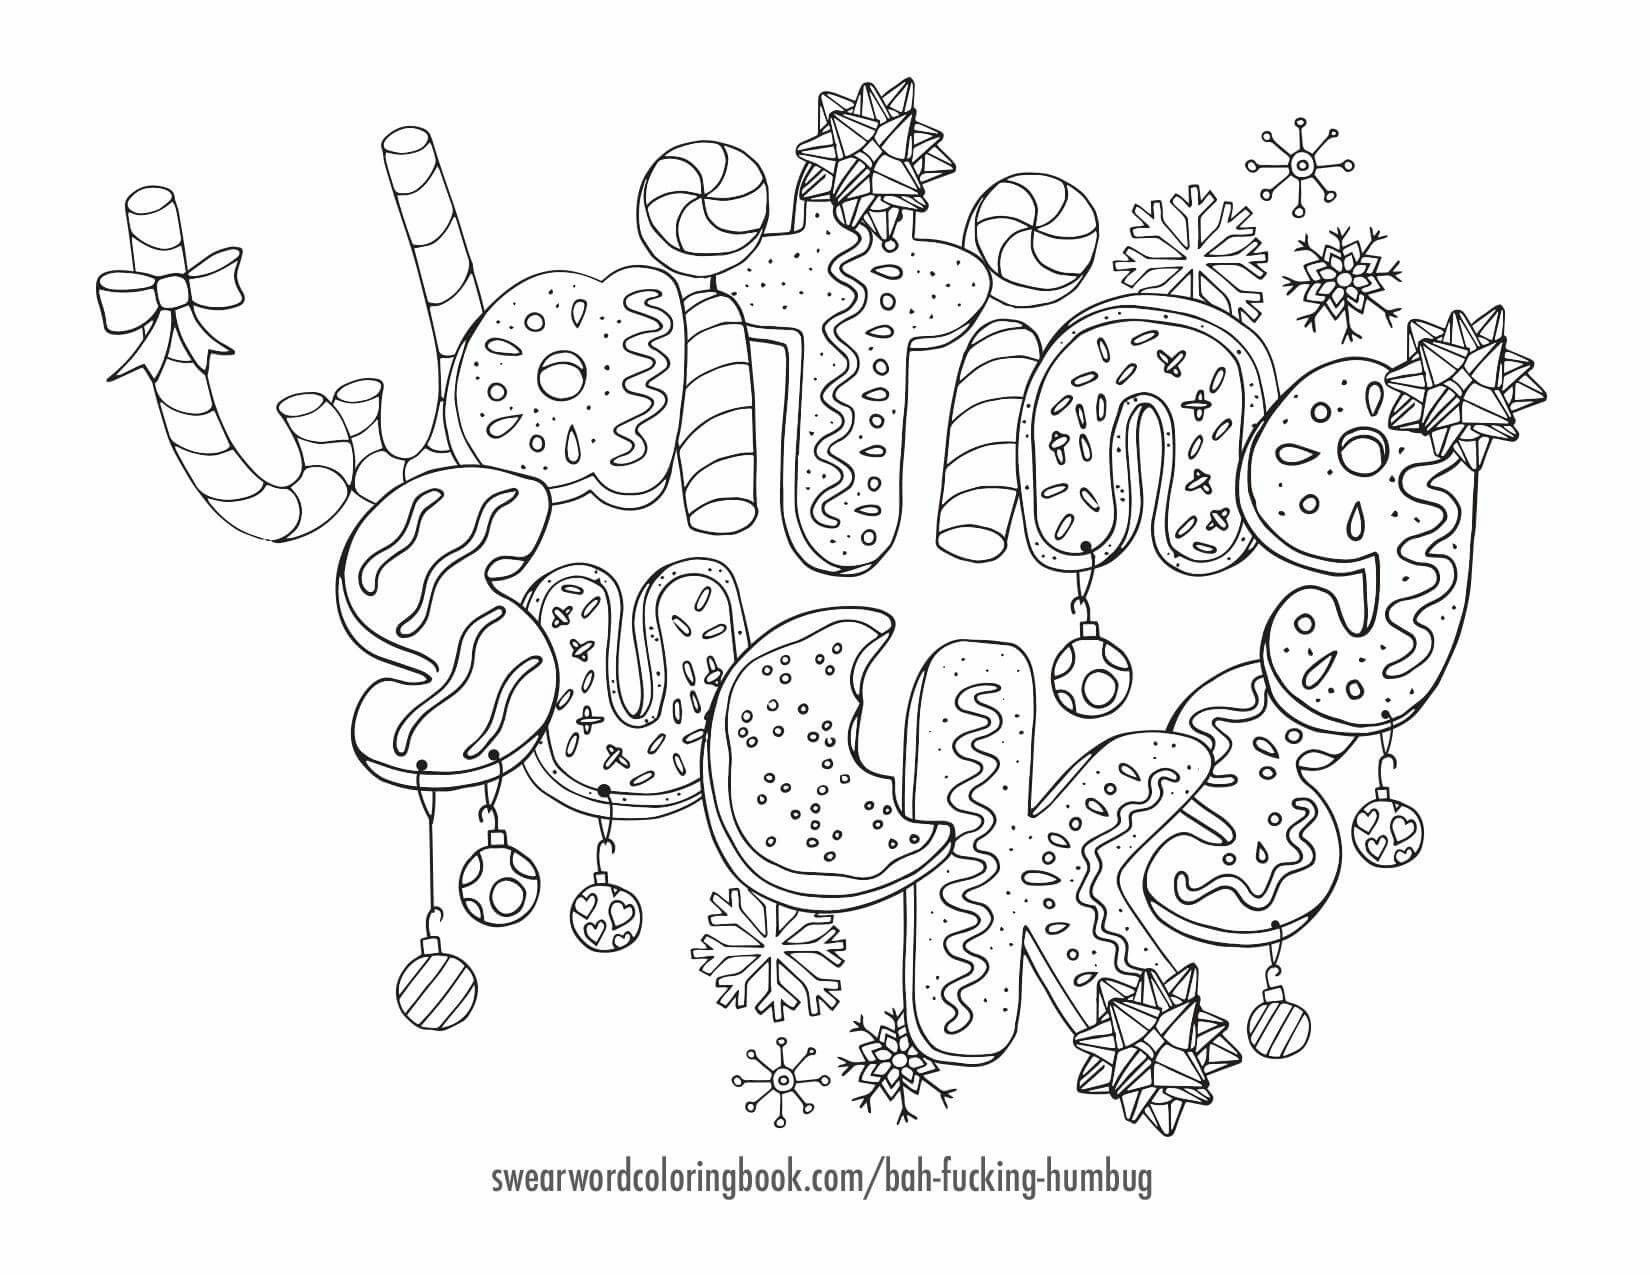 Popsicle Coloring Page Word Taken